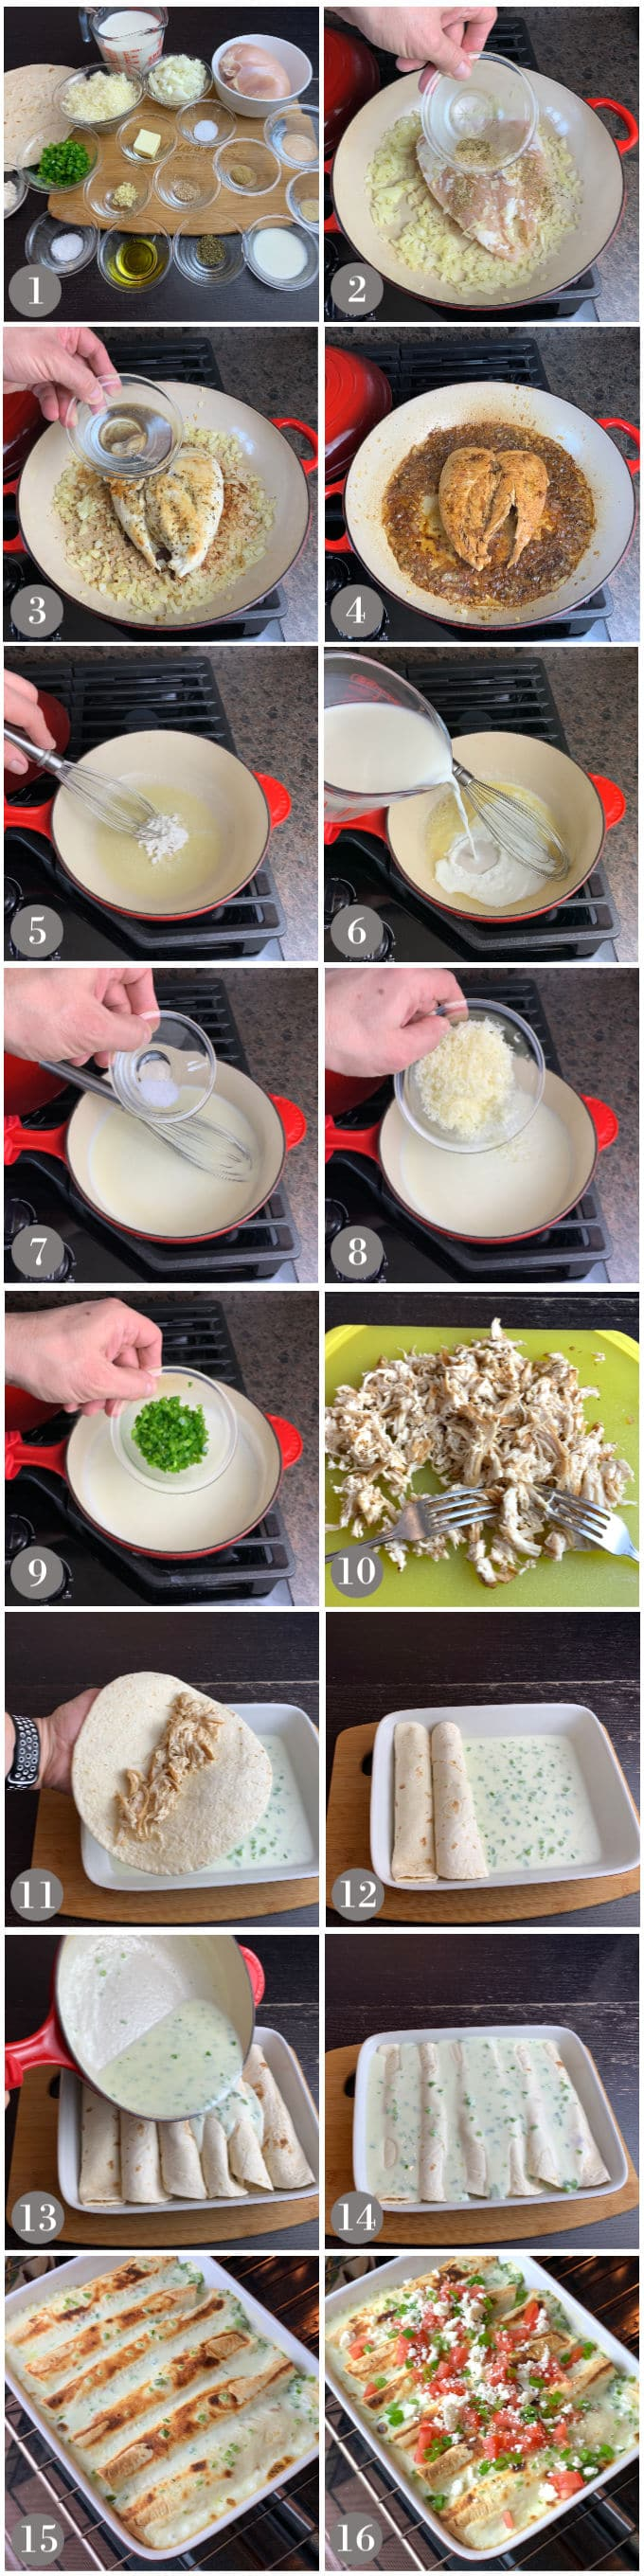 A collage of photos showing the ingredients and steps to make chicken enchiladas with jalapeño white sauce.